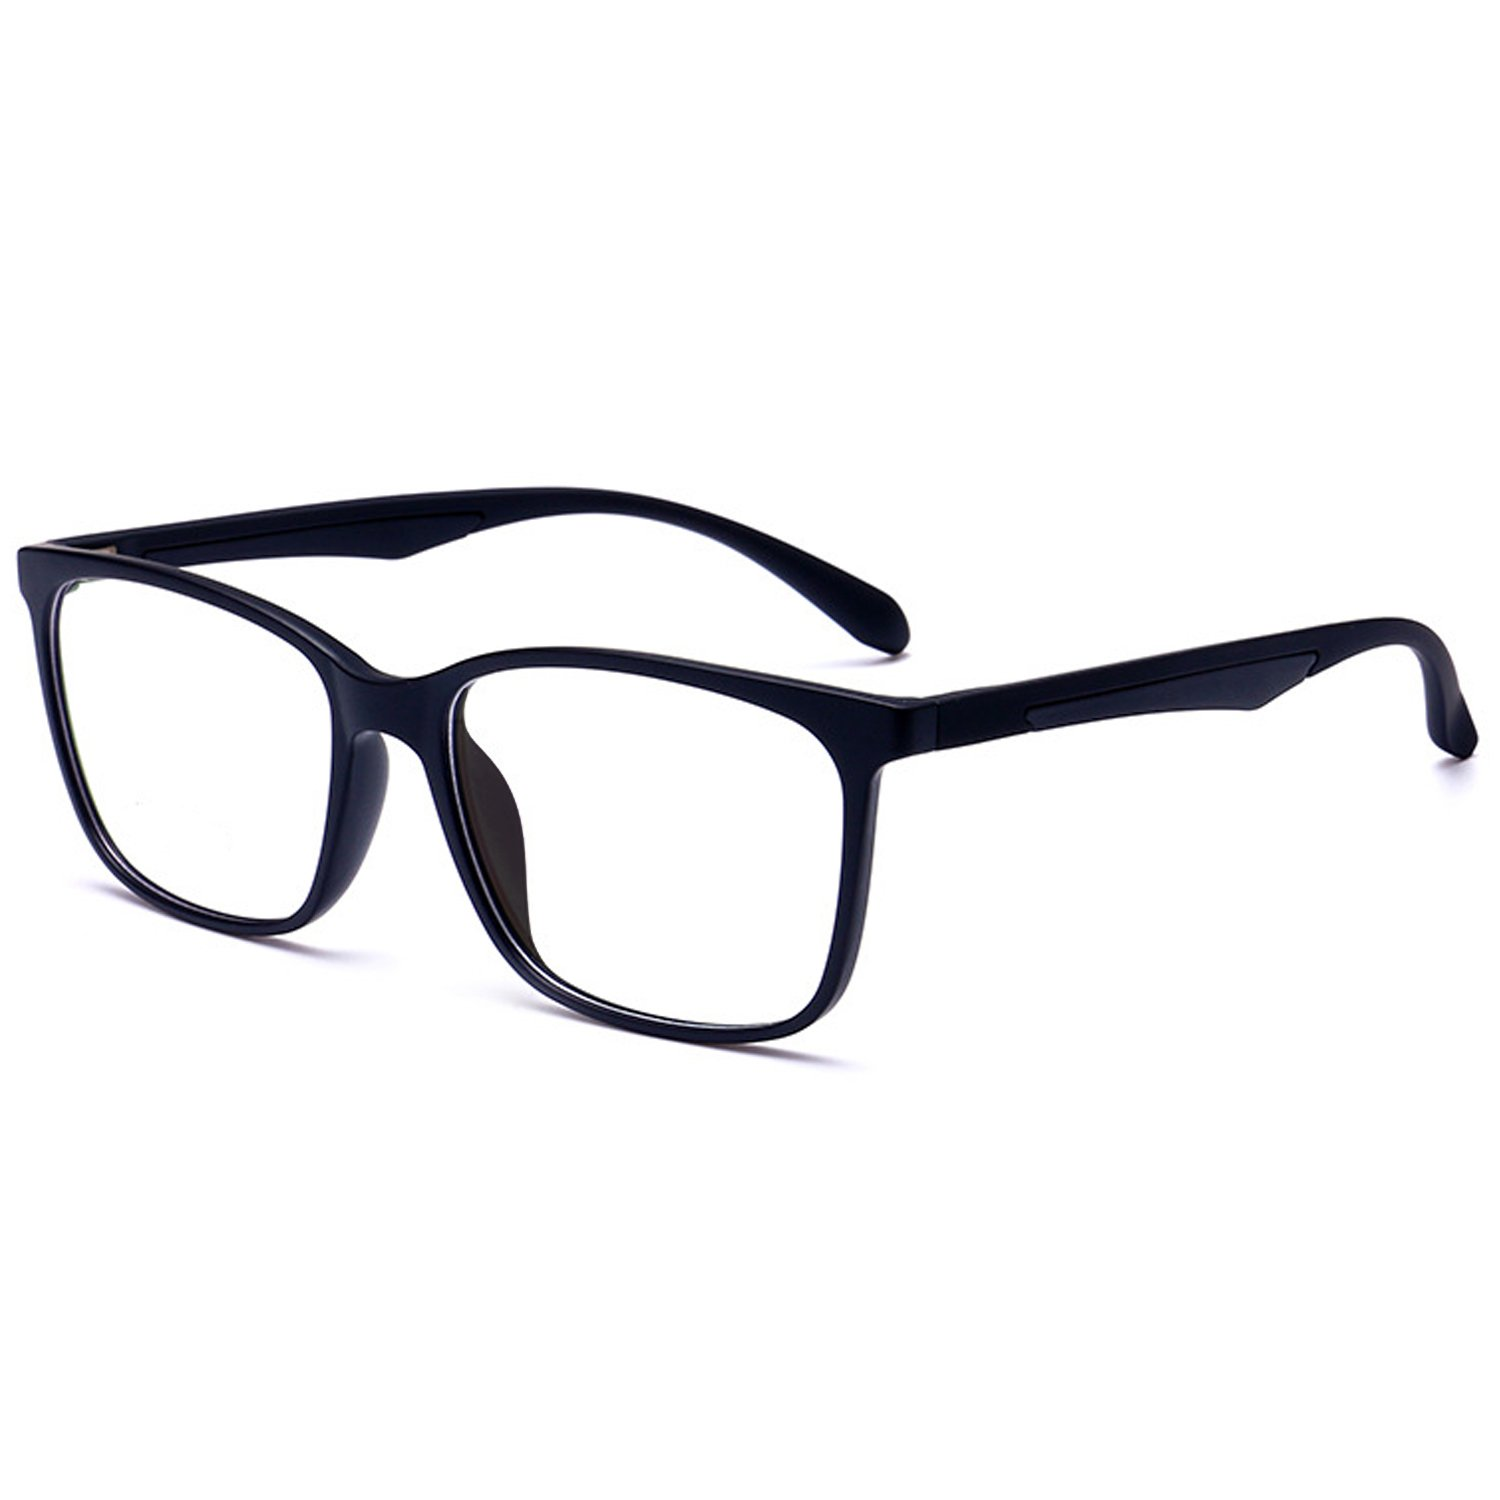 4e474acae0 Best Rated in Computer Blue Light Blocking Glasses   Helpful ...